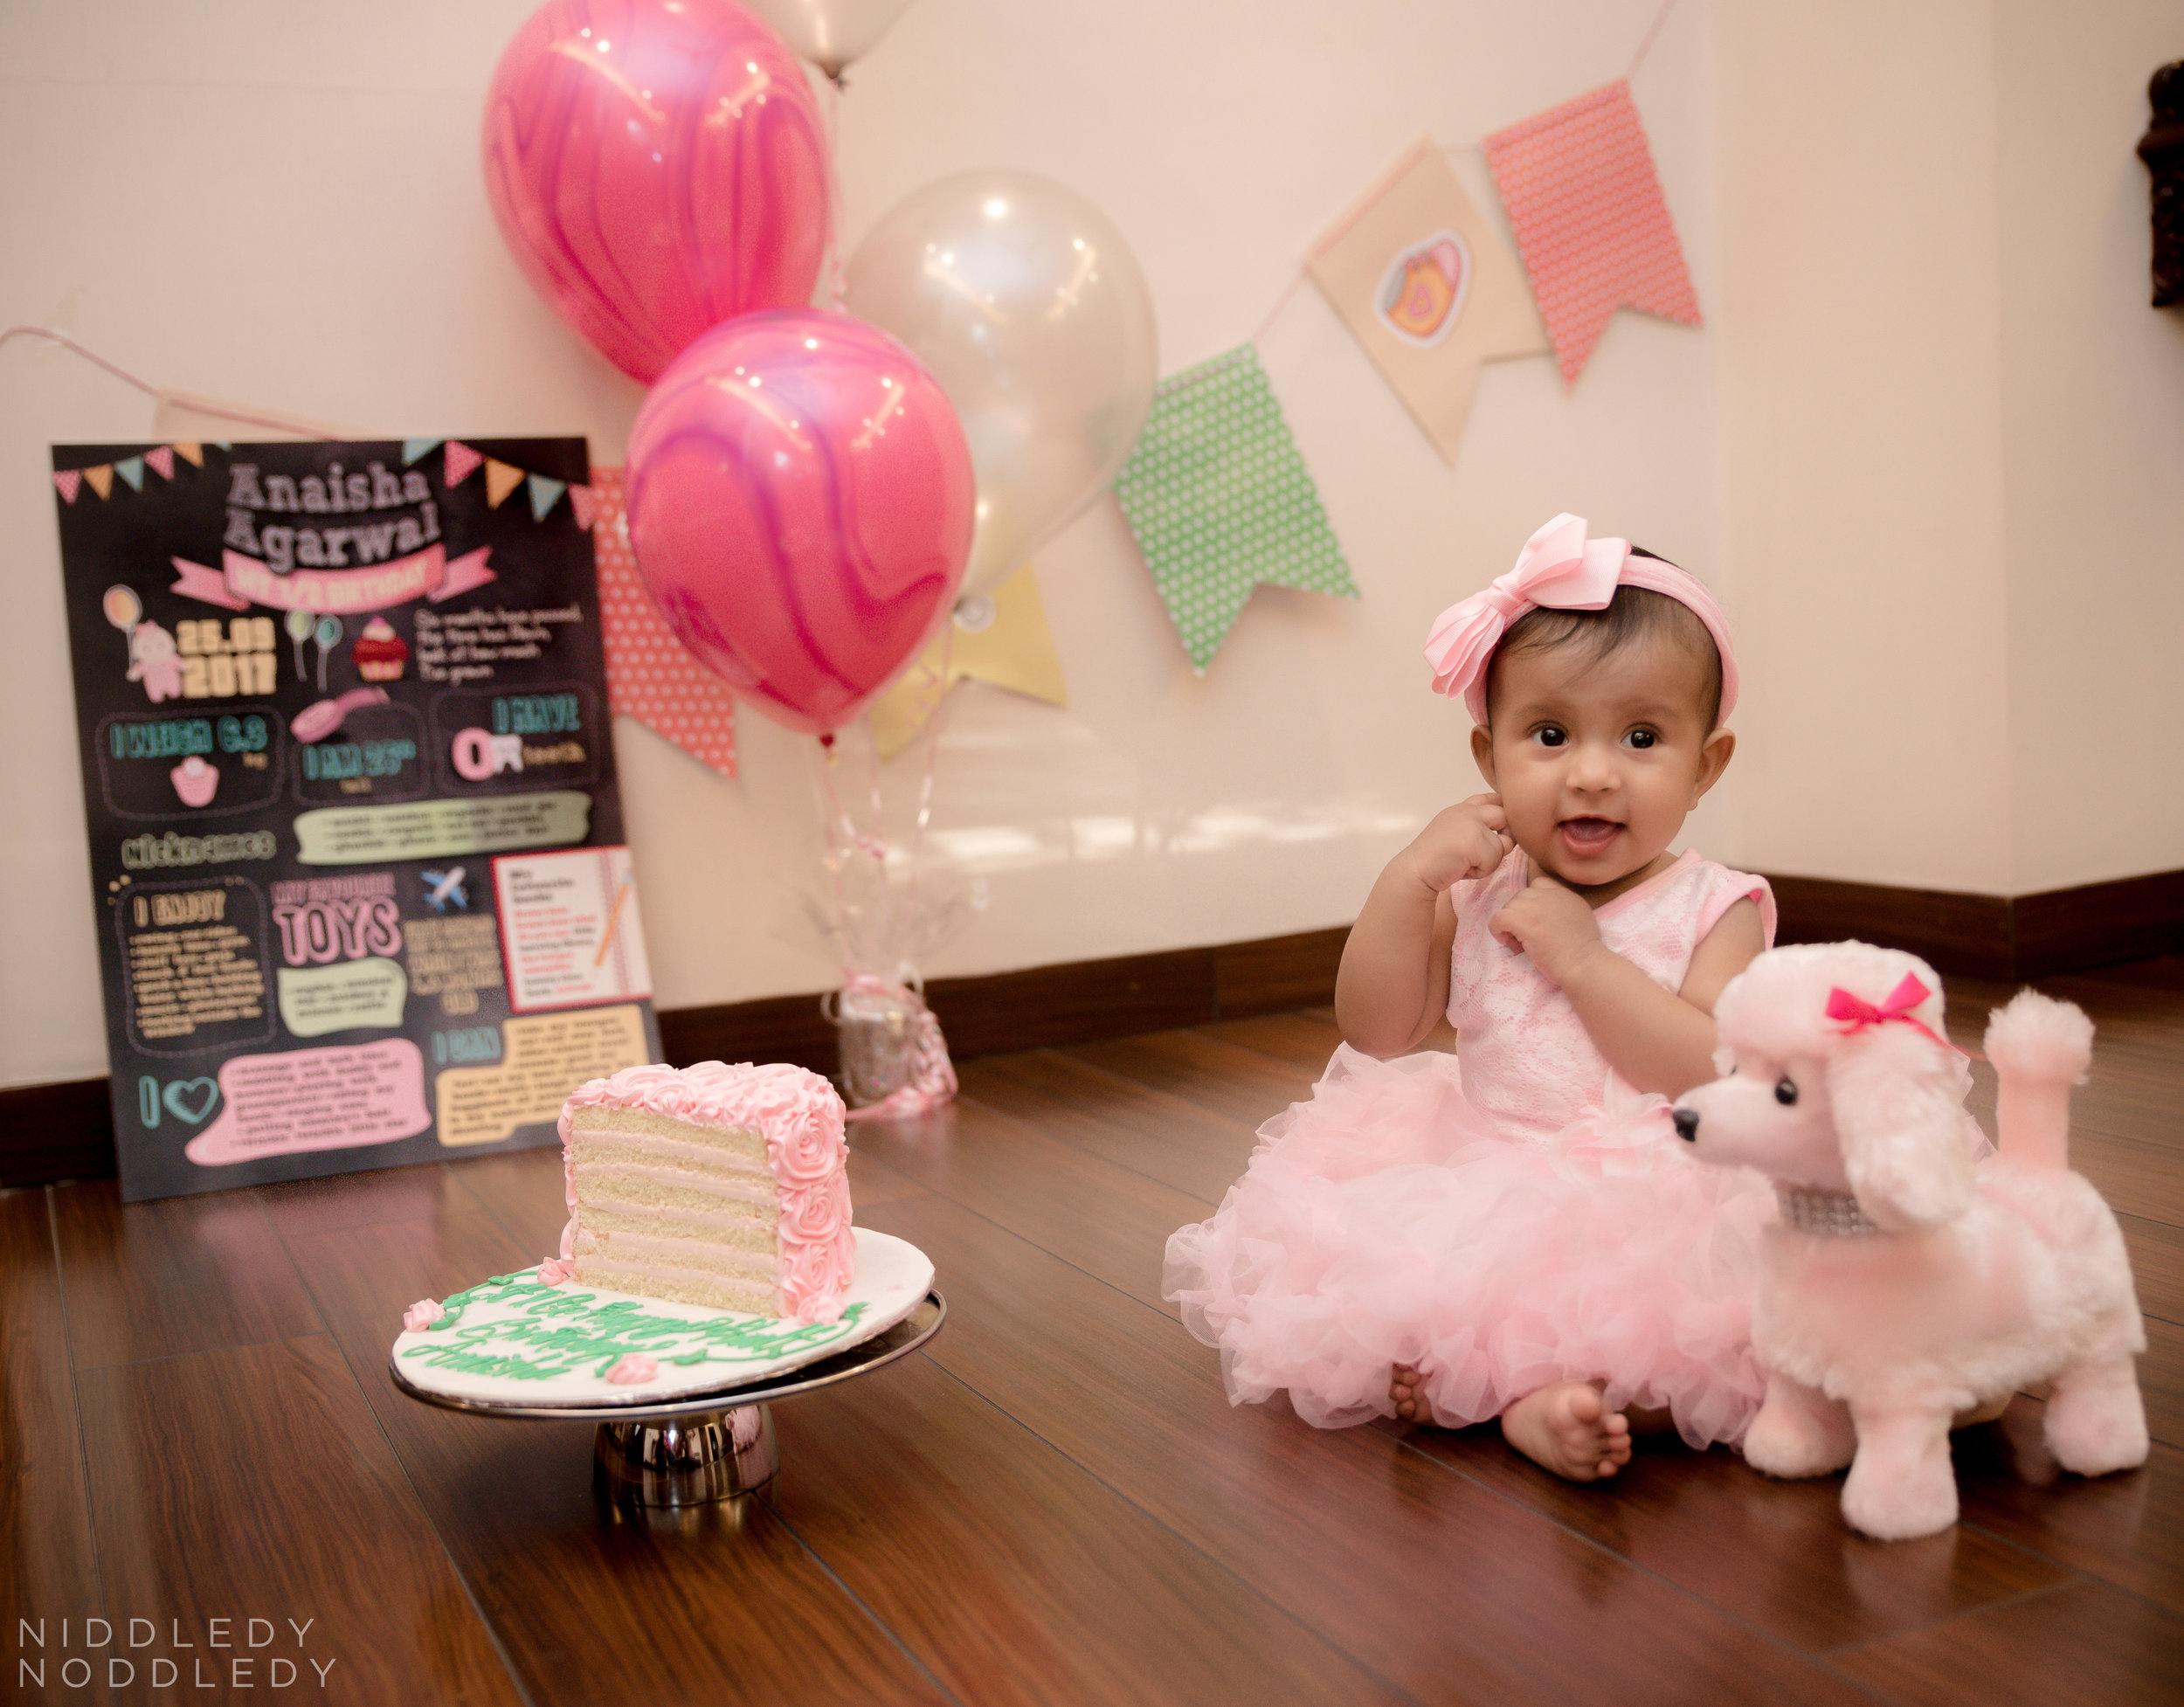 Anaisha Baby Photoshoot ❤ NiddledyNoddledy.com ~ Bumps to Babies Photography, Kolkata - 59.jpg